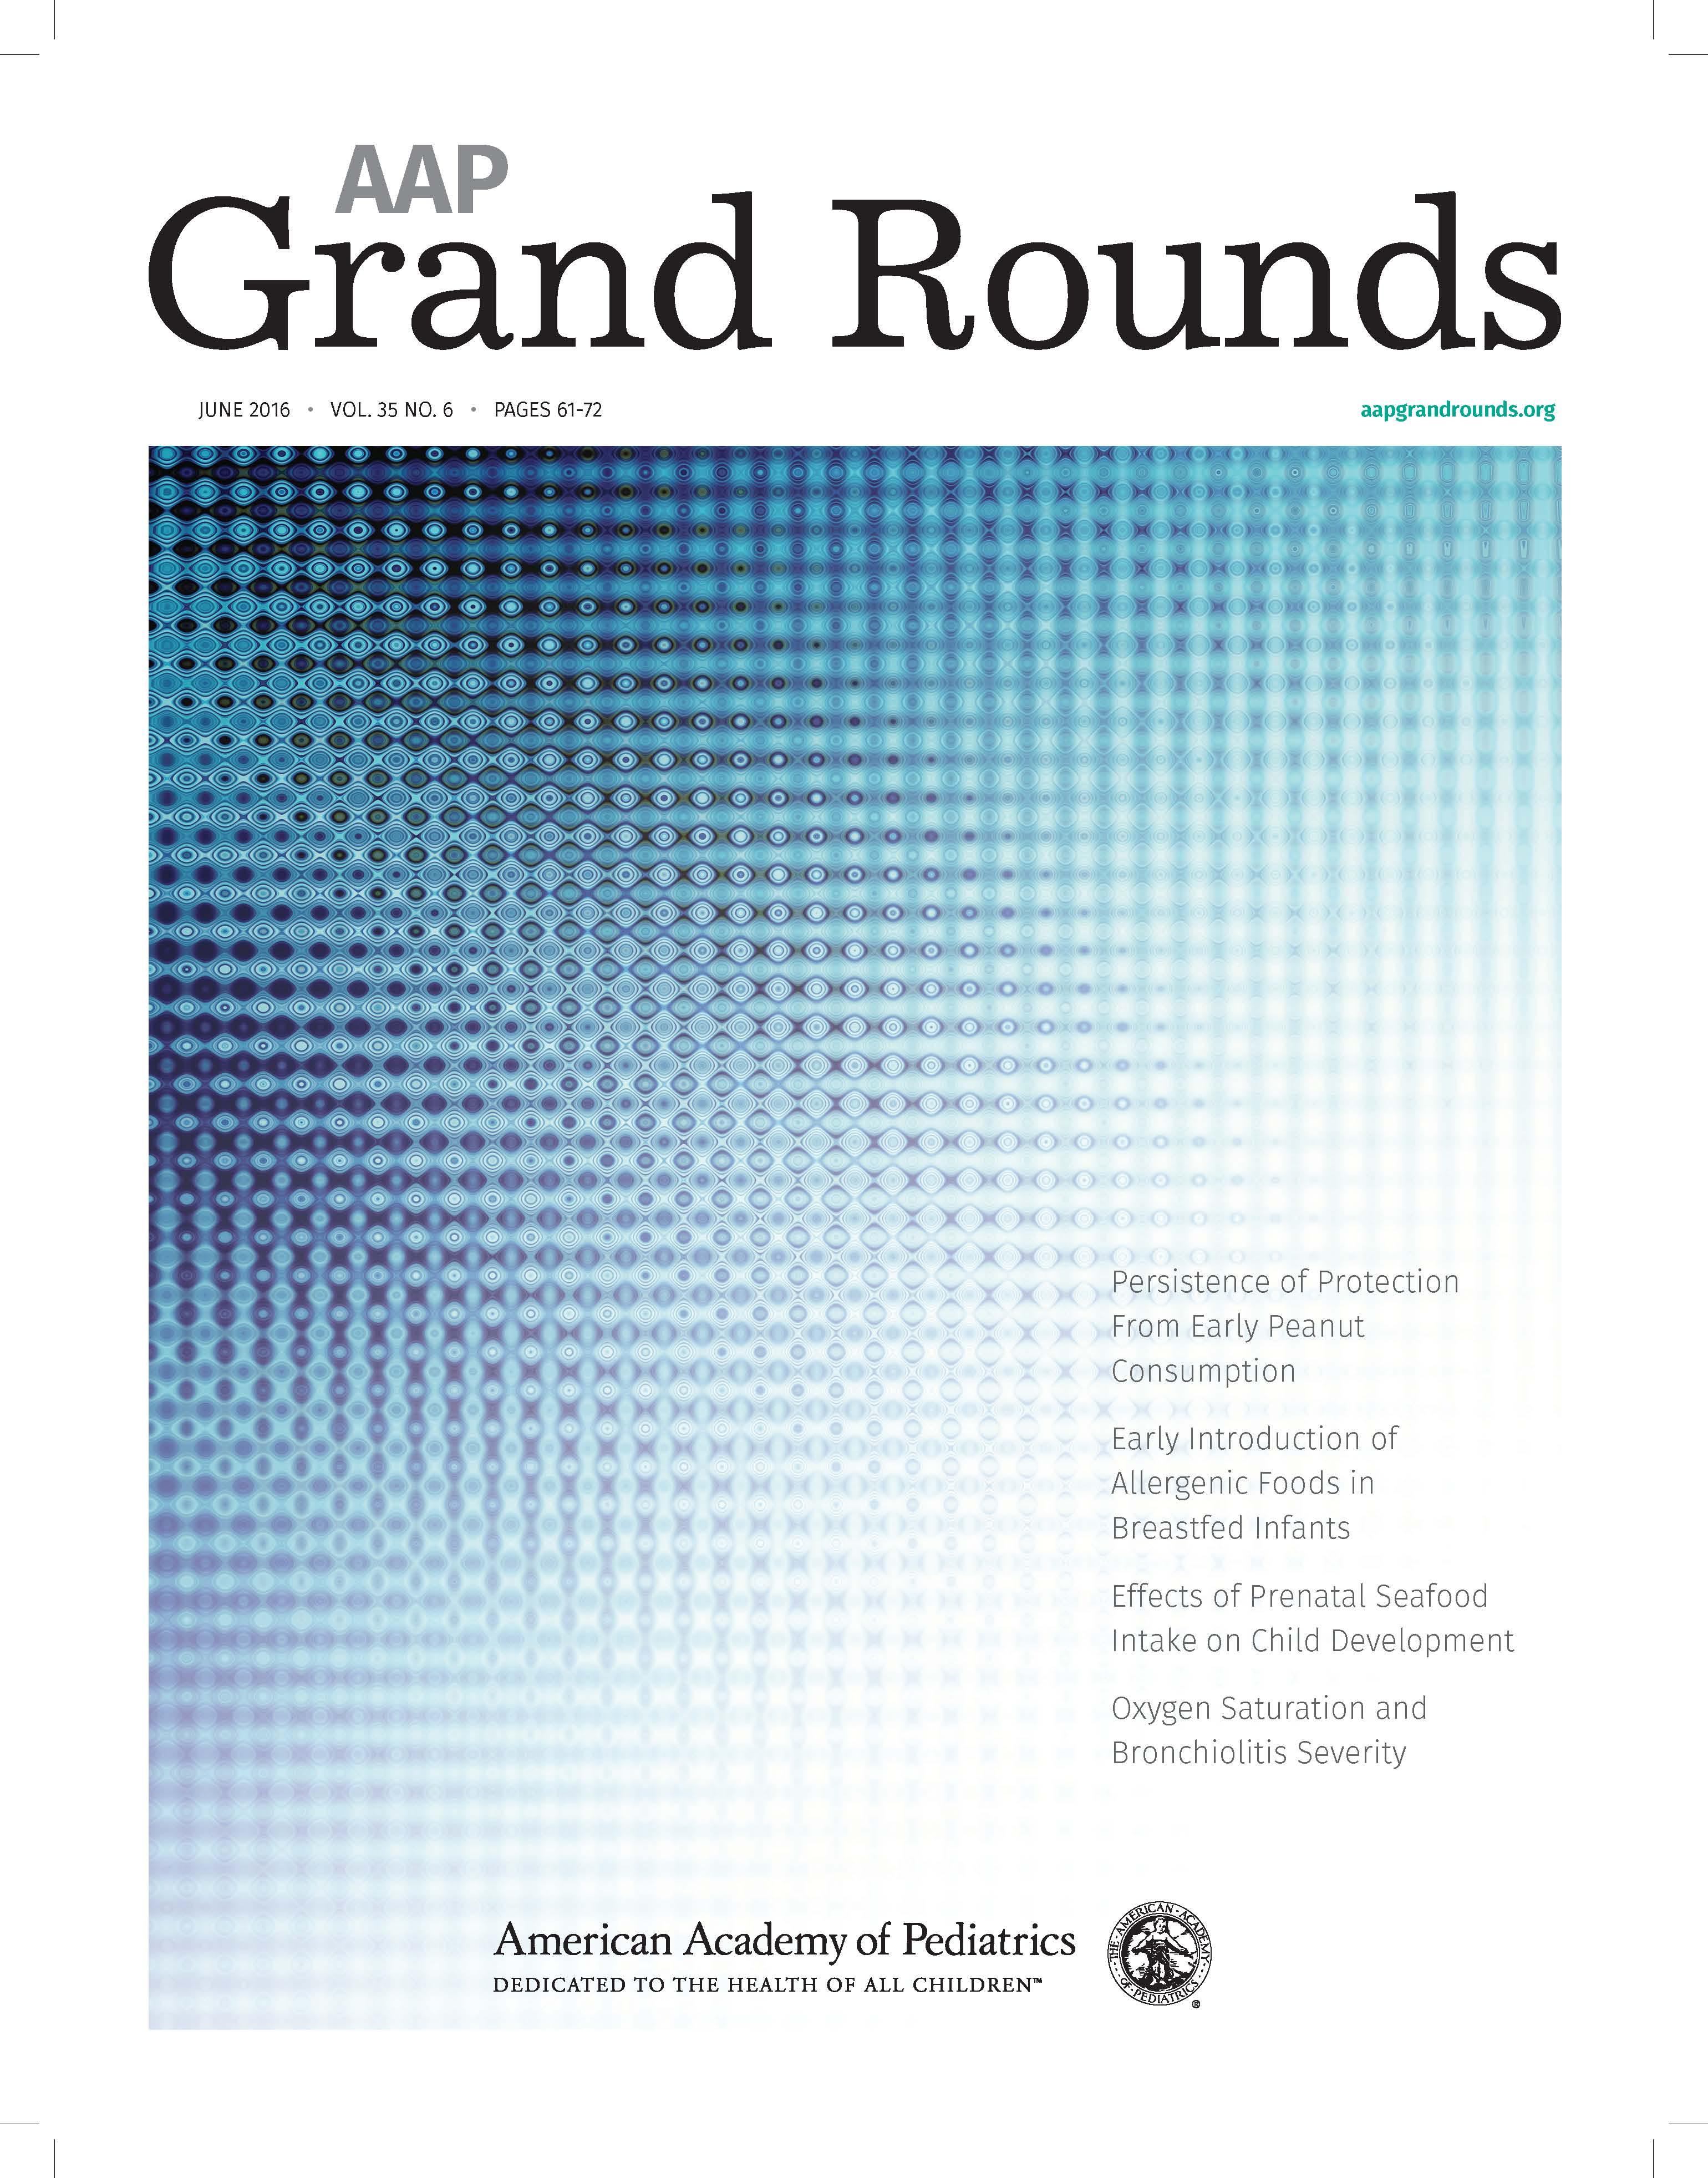 AAP Grand Rounds - New Content Focus and Design